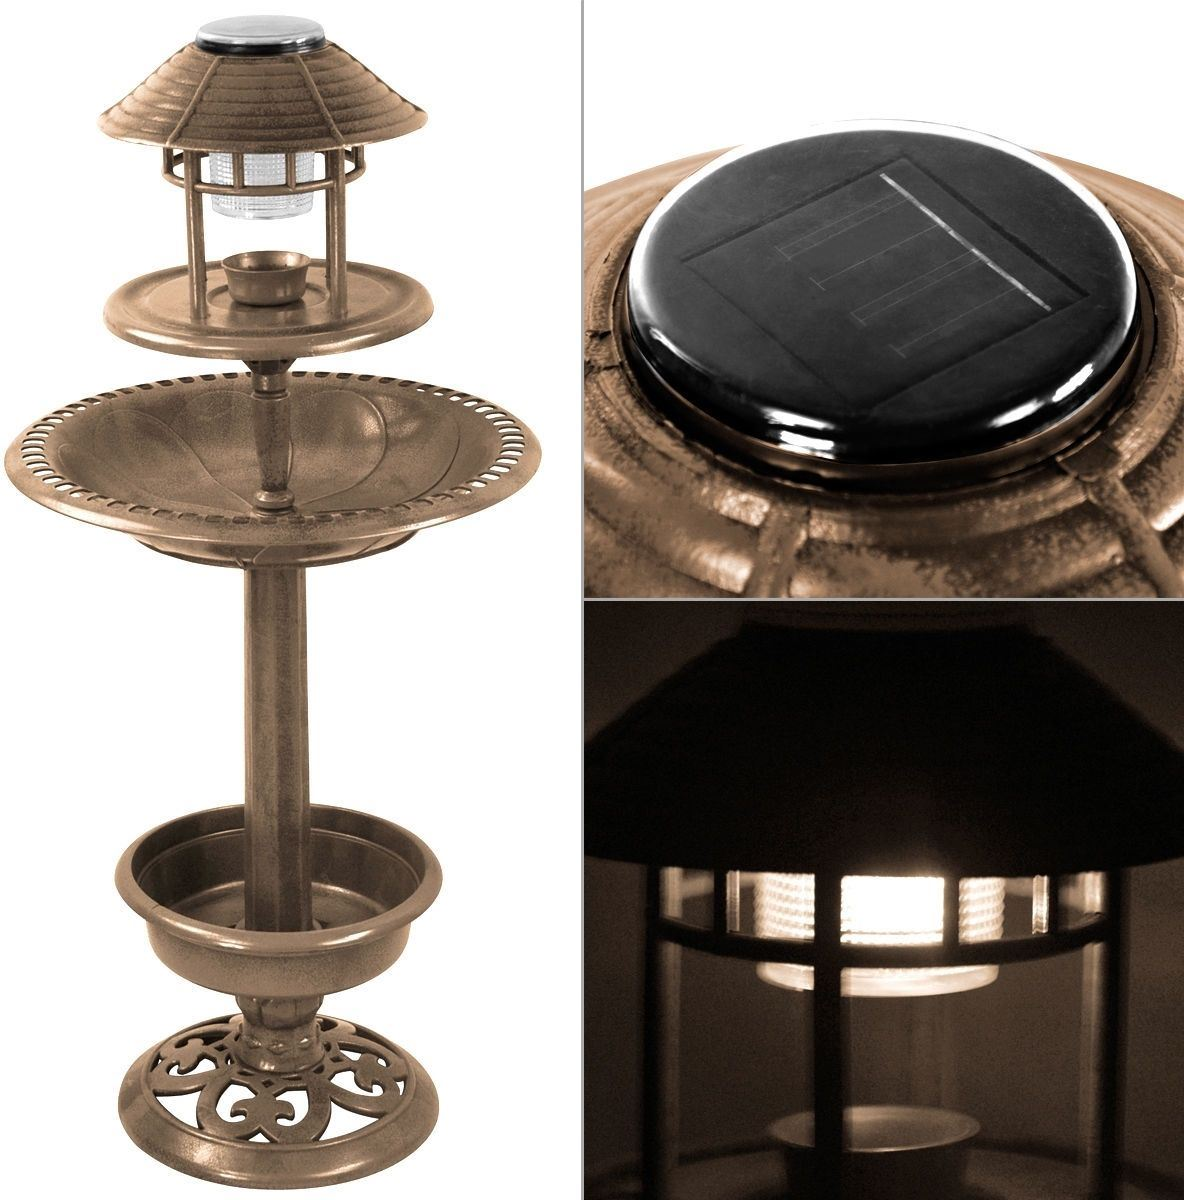 New bird bronze solar ornamental bath garden lantern feeding station table ebay - Dremel 231 tavolo di fresatura ...